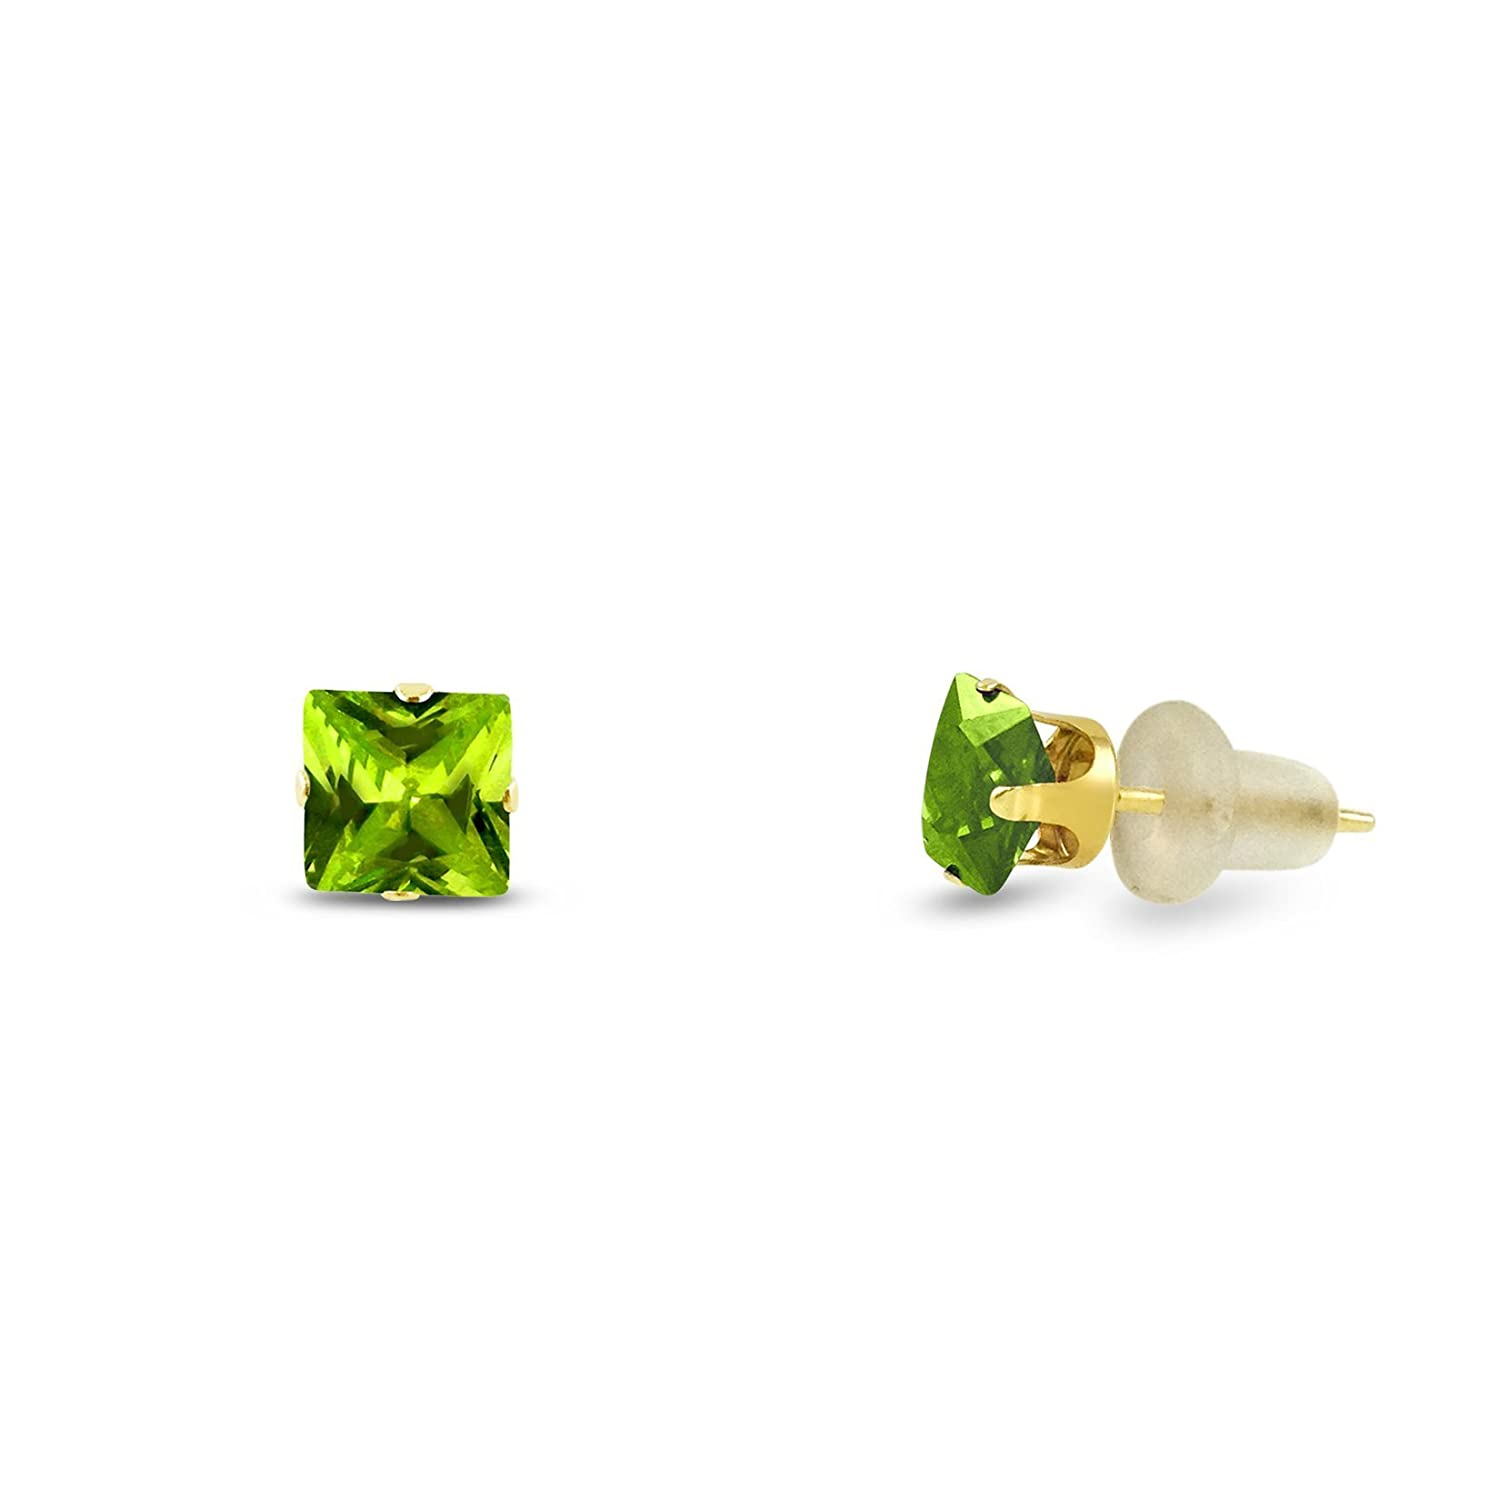 2x2 Square Princess Cut Gemstones Available in Solid 10K White or Yellow Gold 4-Prong Set Stud Earrings